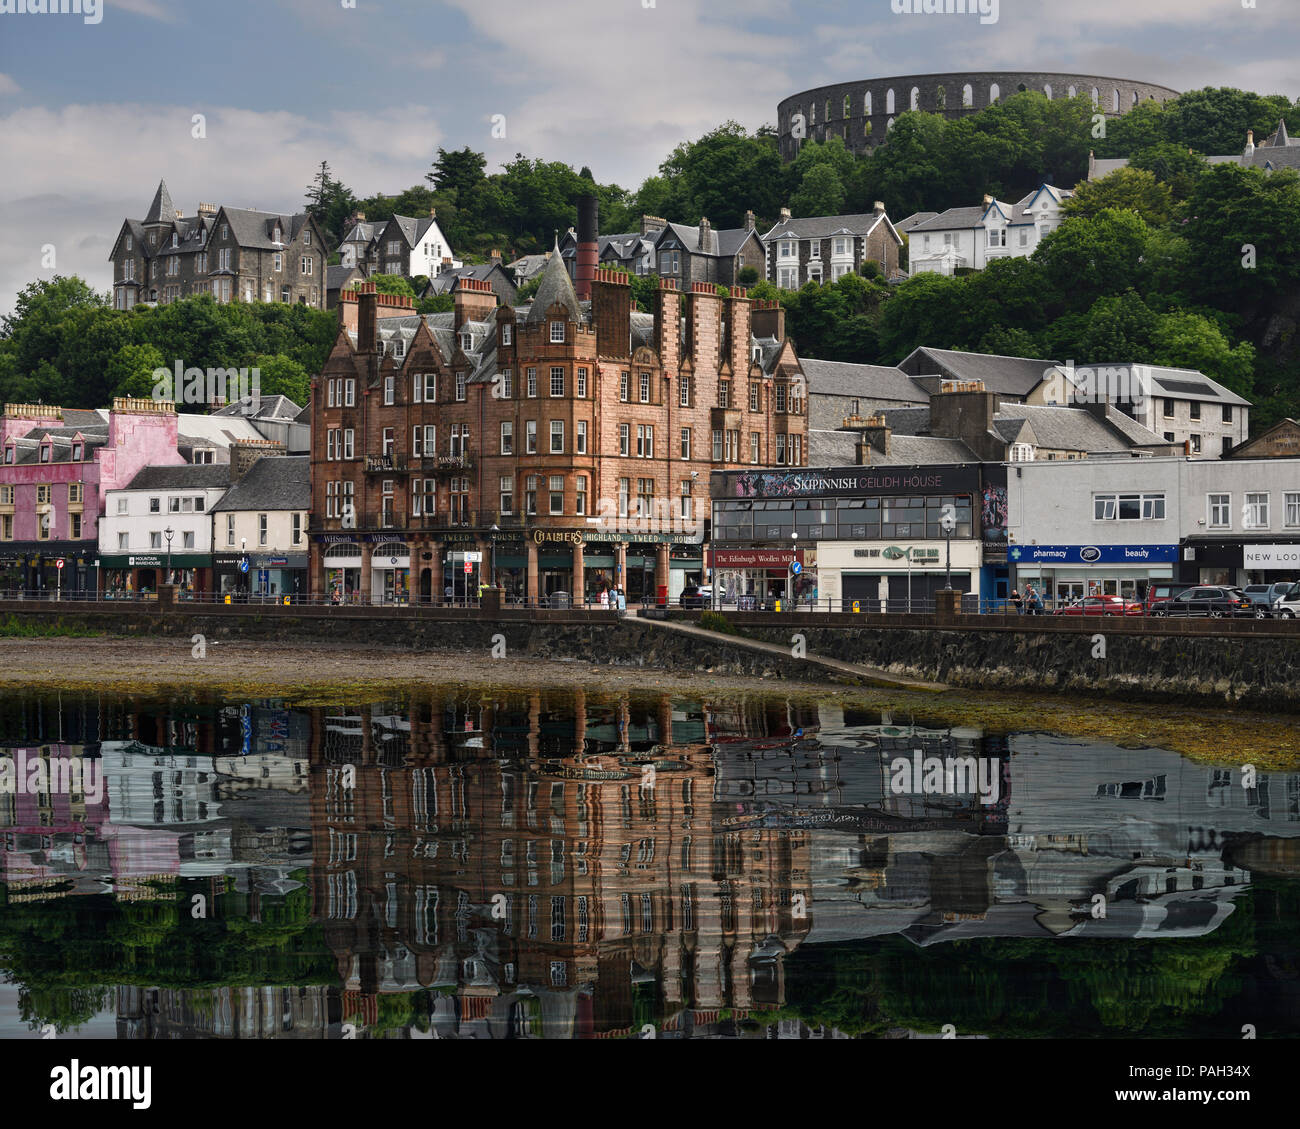 Historic buildings and McCaig's Tower on Battery Hill overlooking Oban harbour with water reflections in Oban Bay Scotland UK - Stock Image